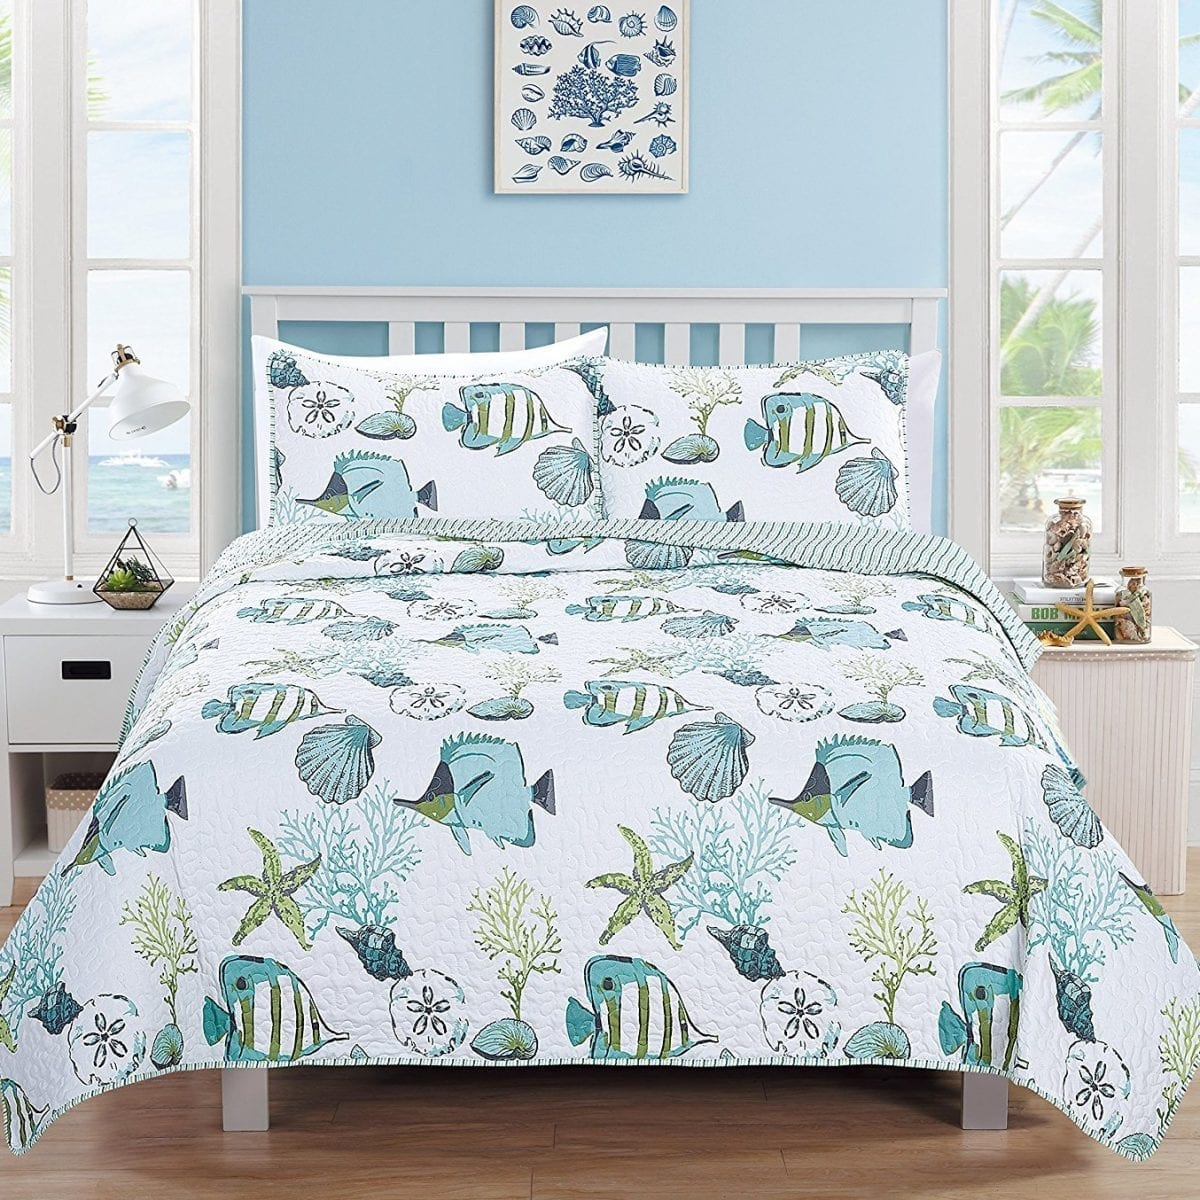 3-Piece-Coastal-Beach-Theme-Quilt-Set-with-Shams Coastal Bedding and Beach Bedding Sets